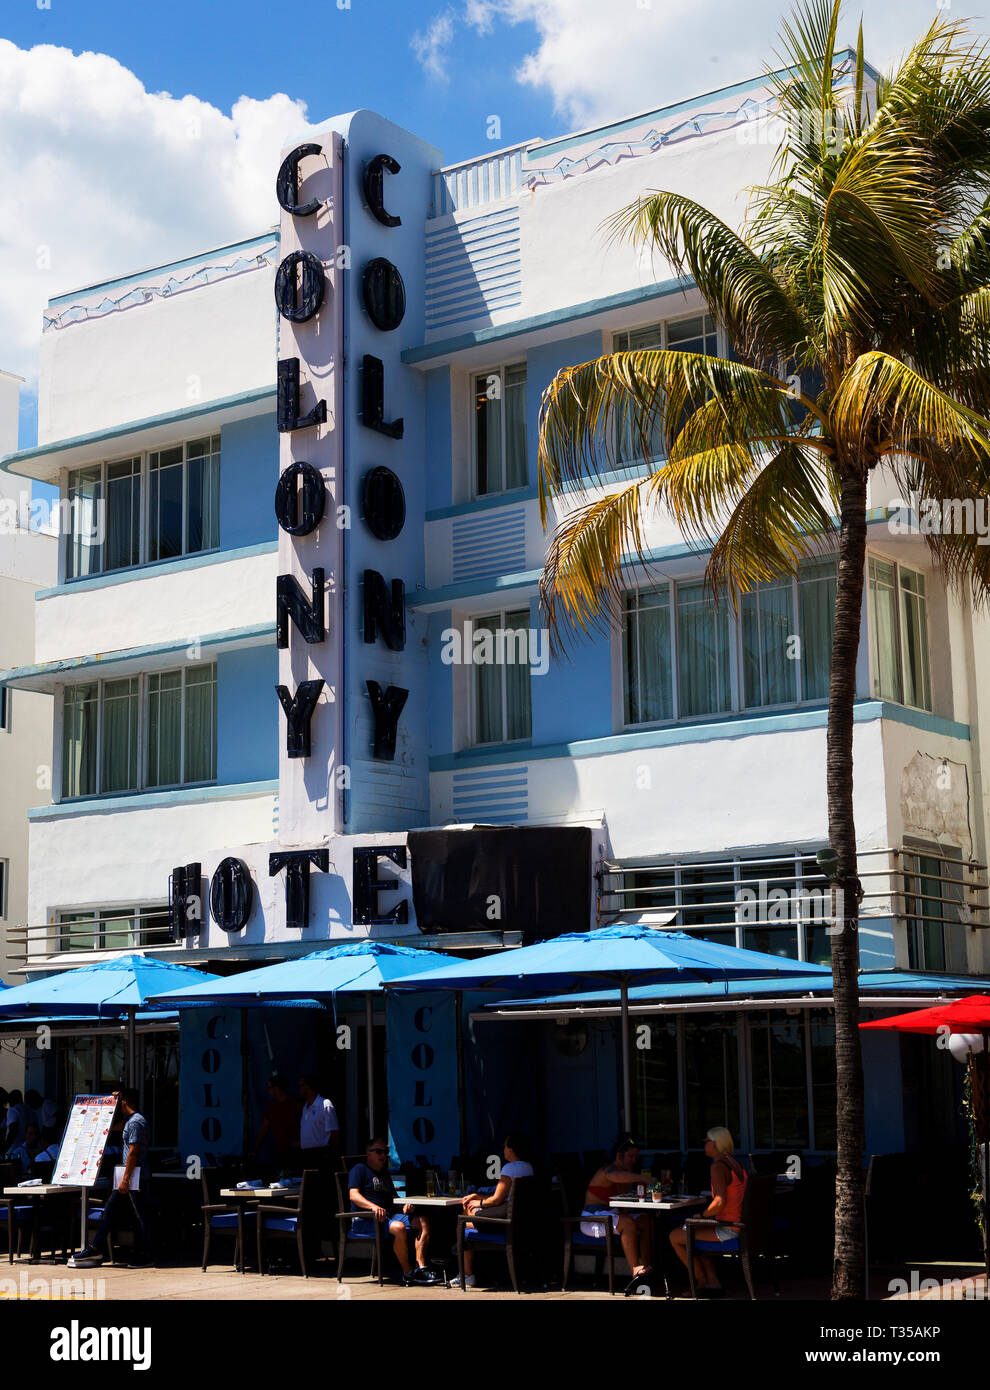 Colony Hotel art deco architecture on Ocean Drive, South Beach, Miami, Florida, USA - Stock Image